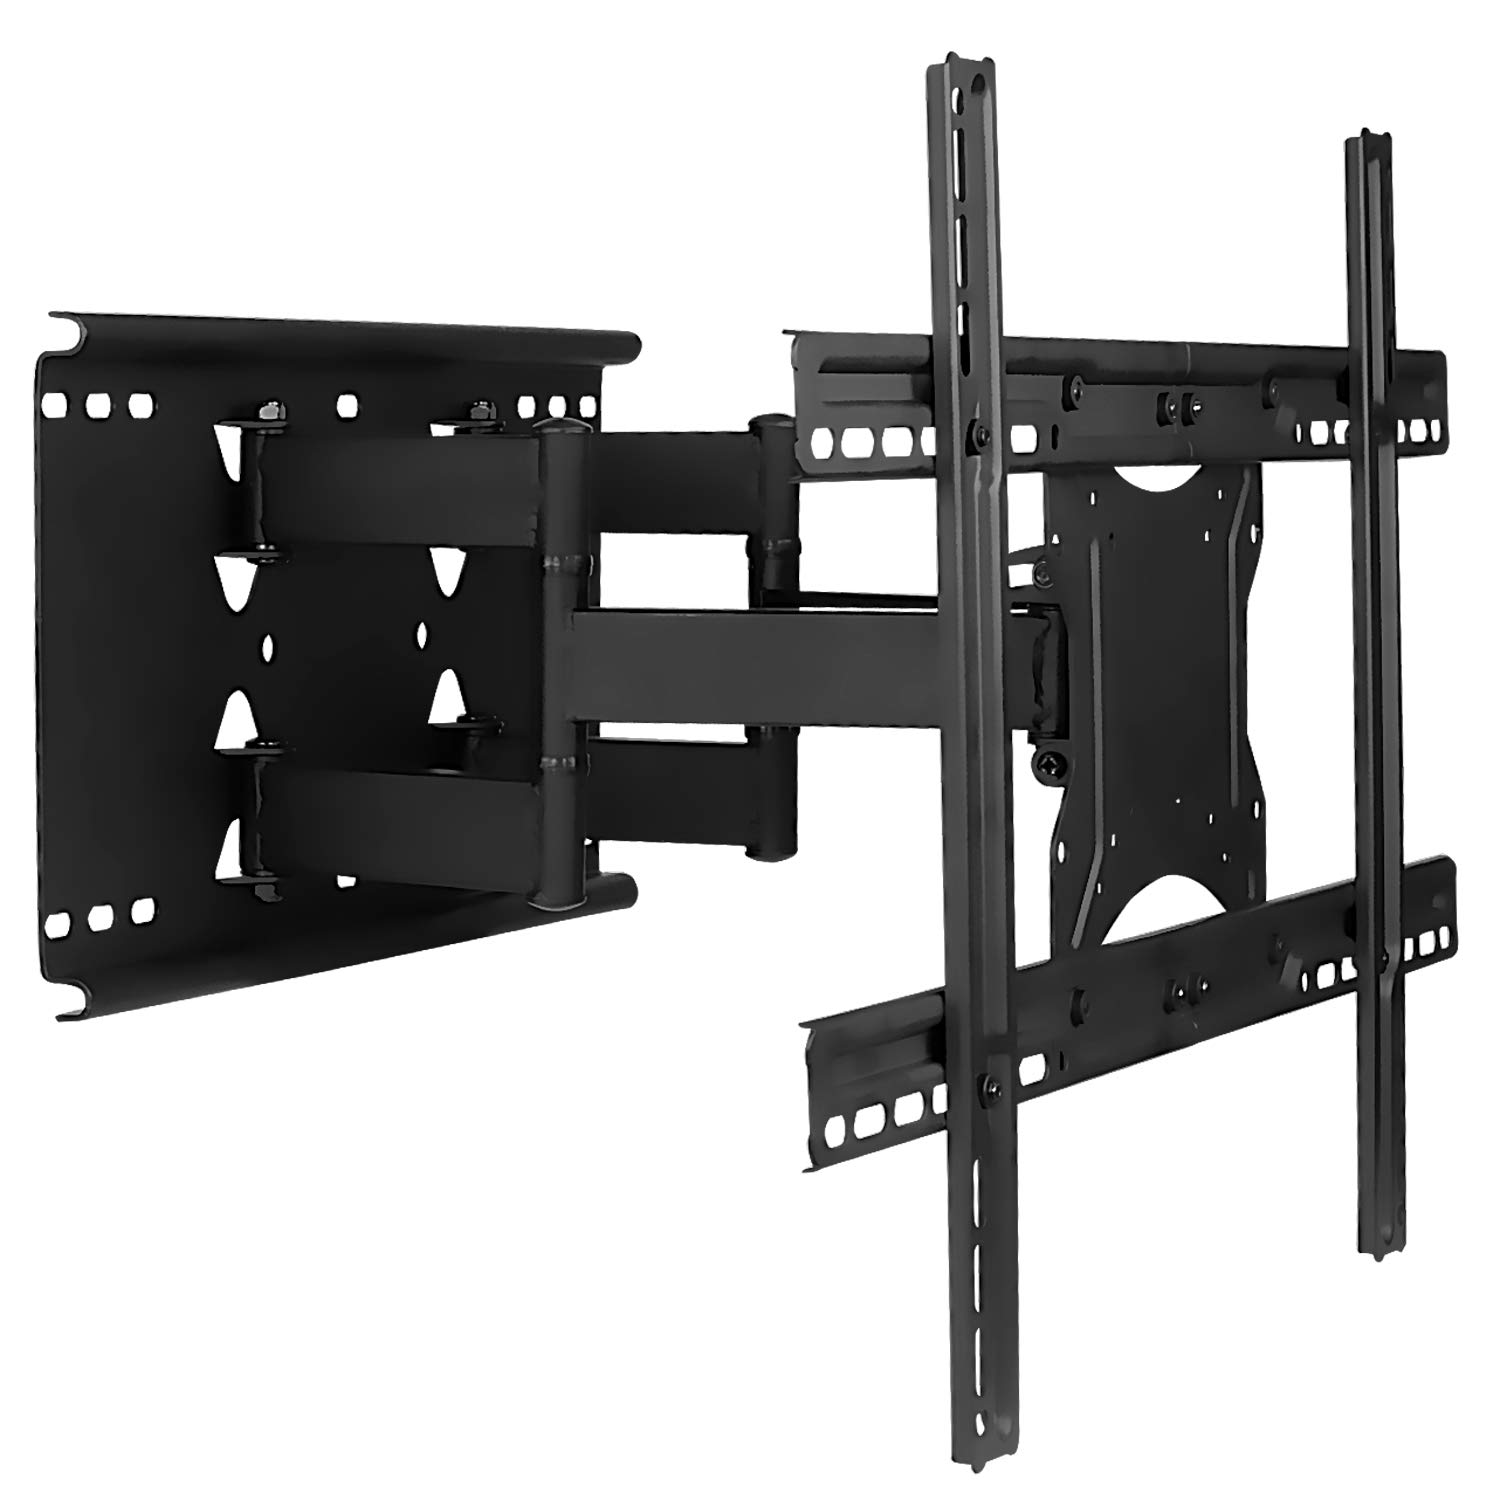 Mount It Full Motion Tv Wall Mount With Dual Articulating Arms Universal Tv Wall Mount Bracket Fits 32 42 50 55 60 70 82 Inch Tvs Up To 132lbs Heavy Duty Steel Vesa 100x100 To 600x400mm